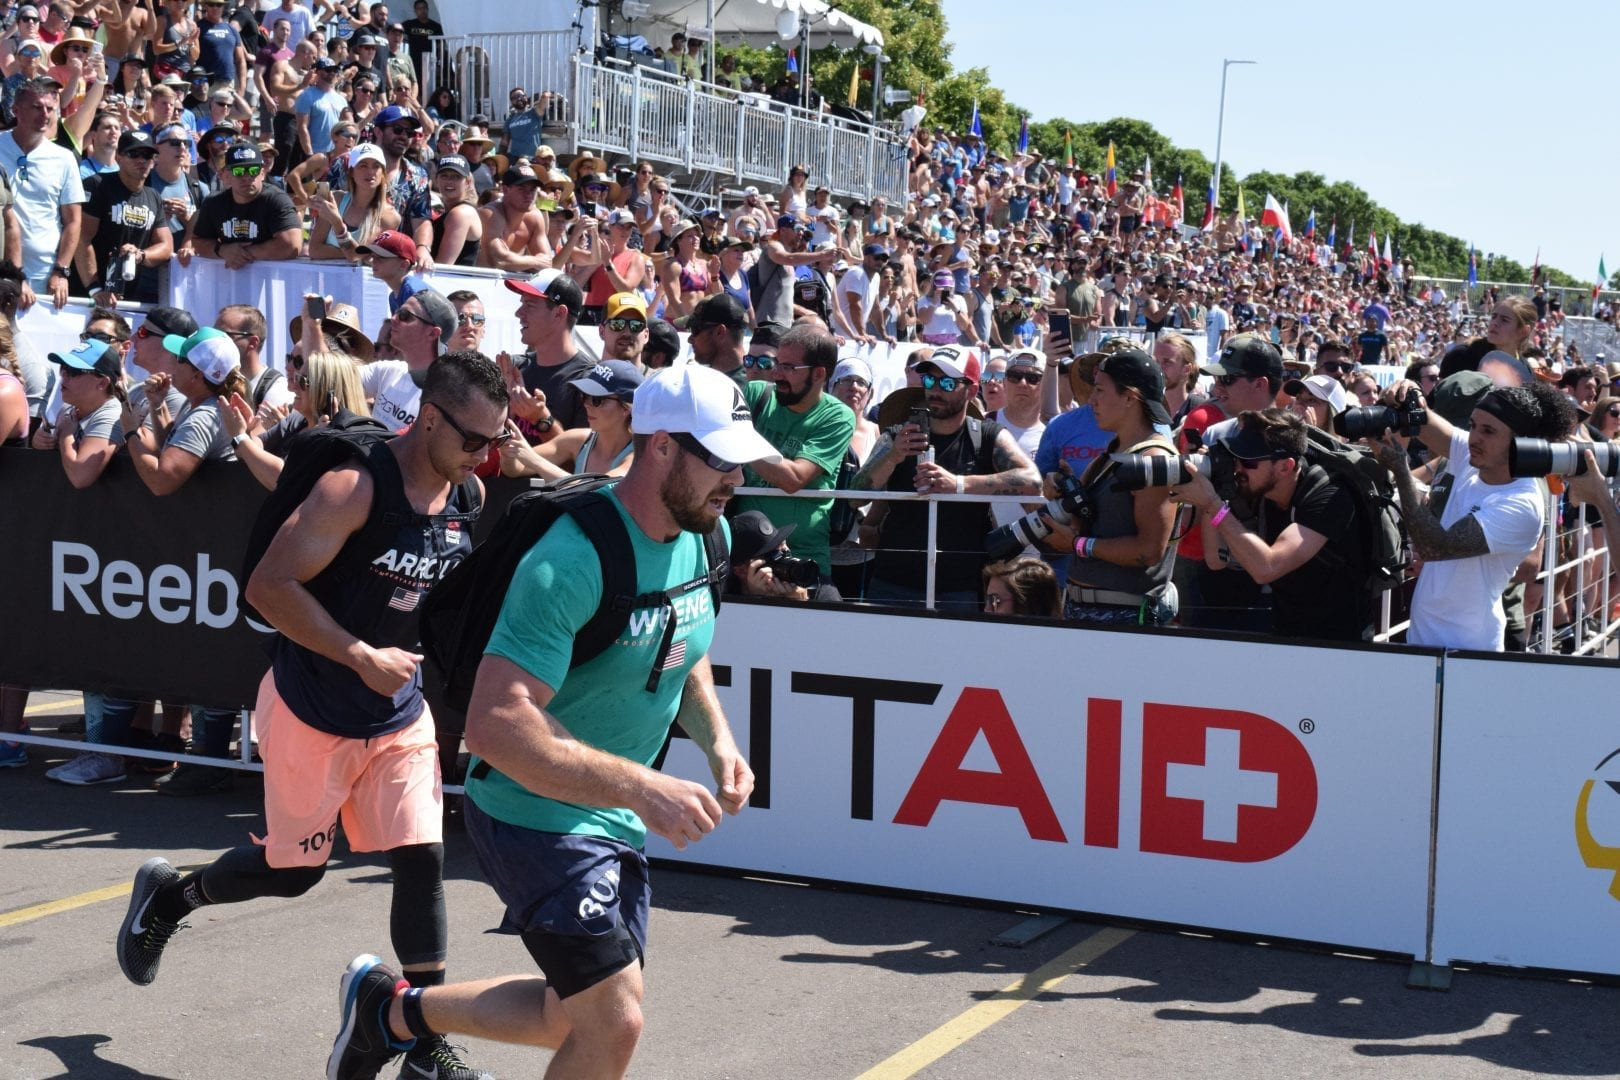 Sean Sweeney, the CrossFit Cowboy of CrossFit Powerstroke, completes the Ruck Run event at the 2019 CrossFit Games